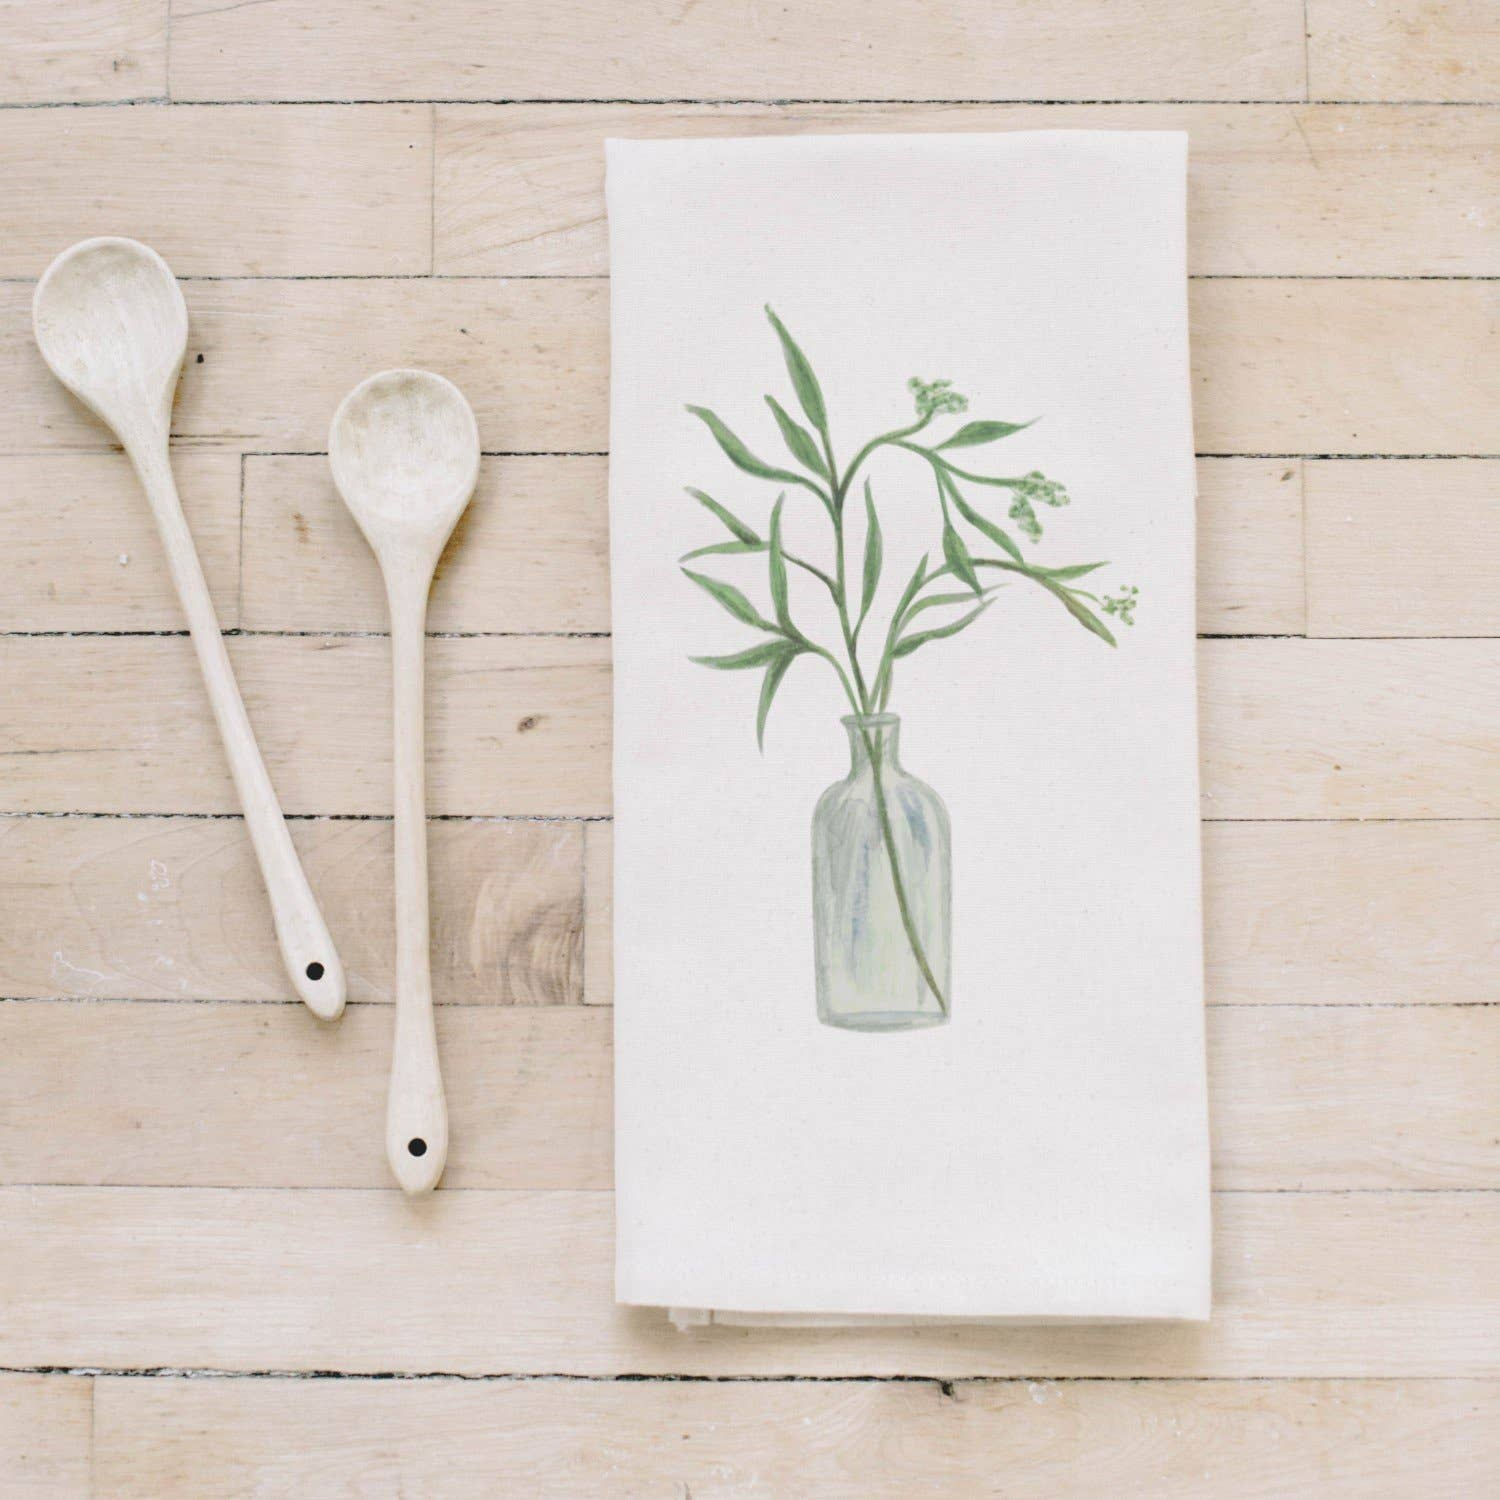 Tea Towel | Eucalyptus Vase Watercolor Tea Towel